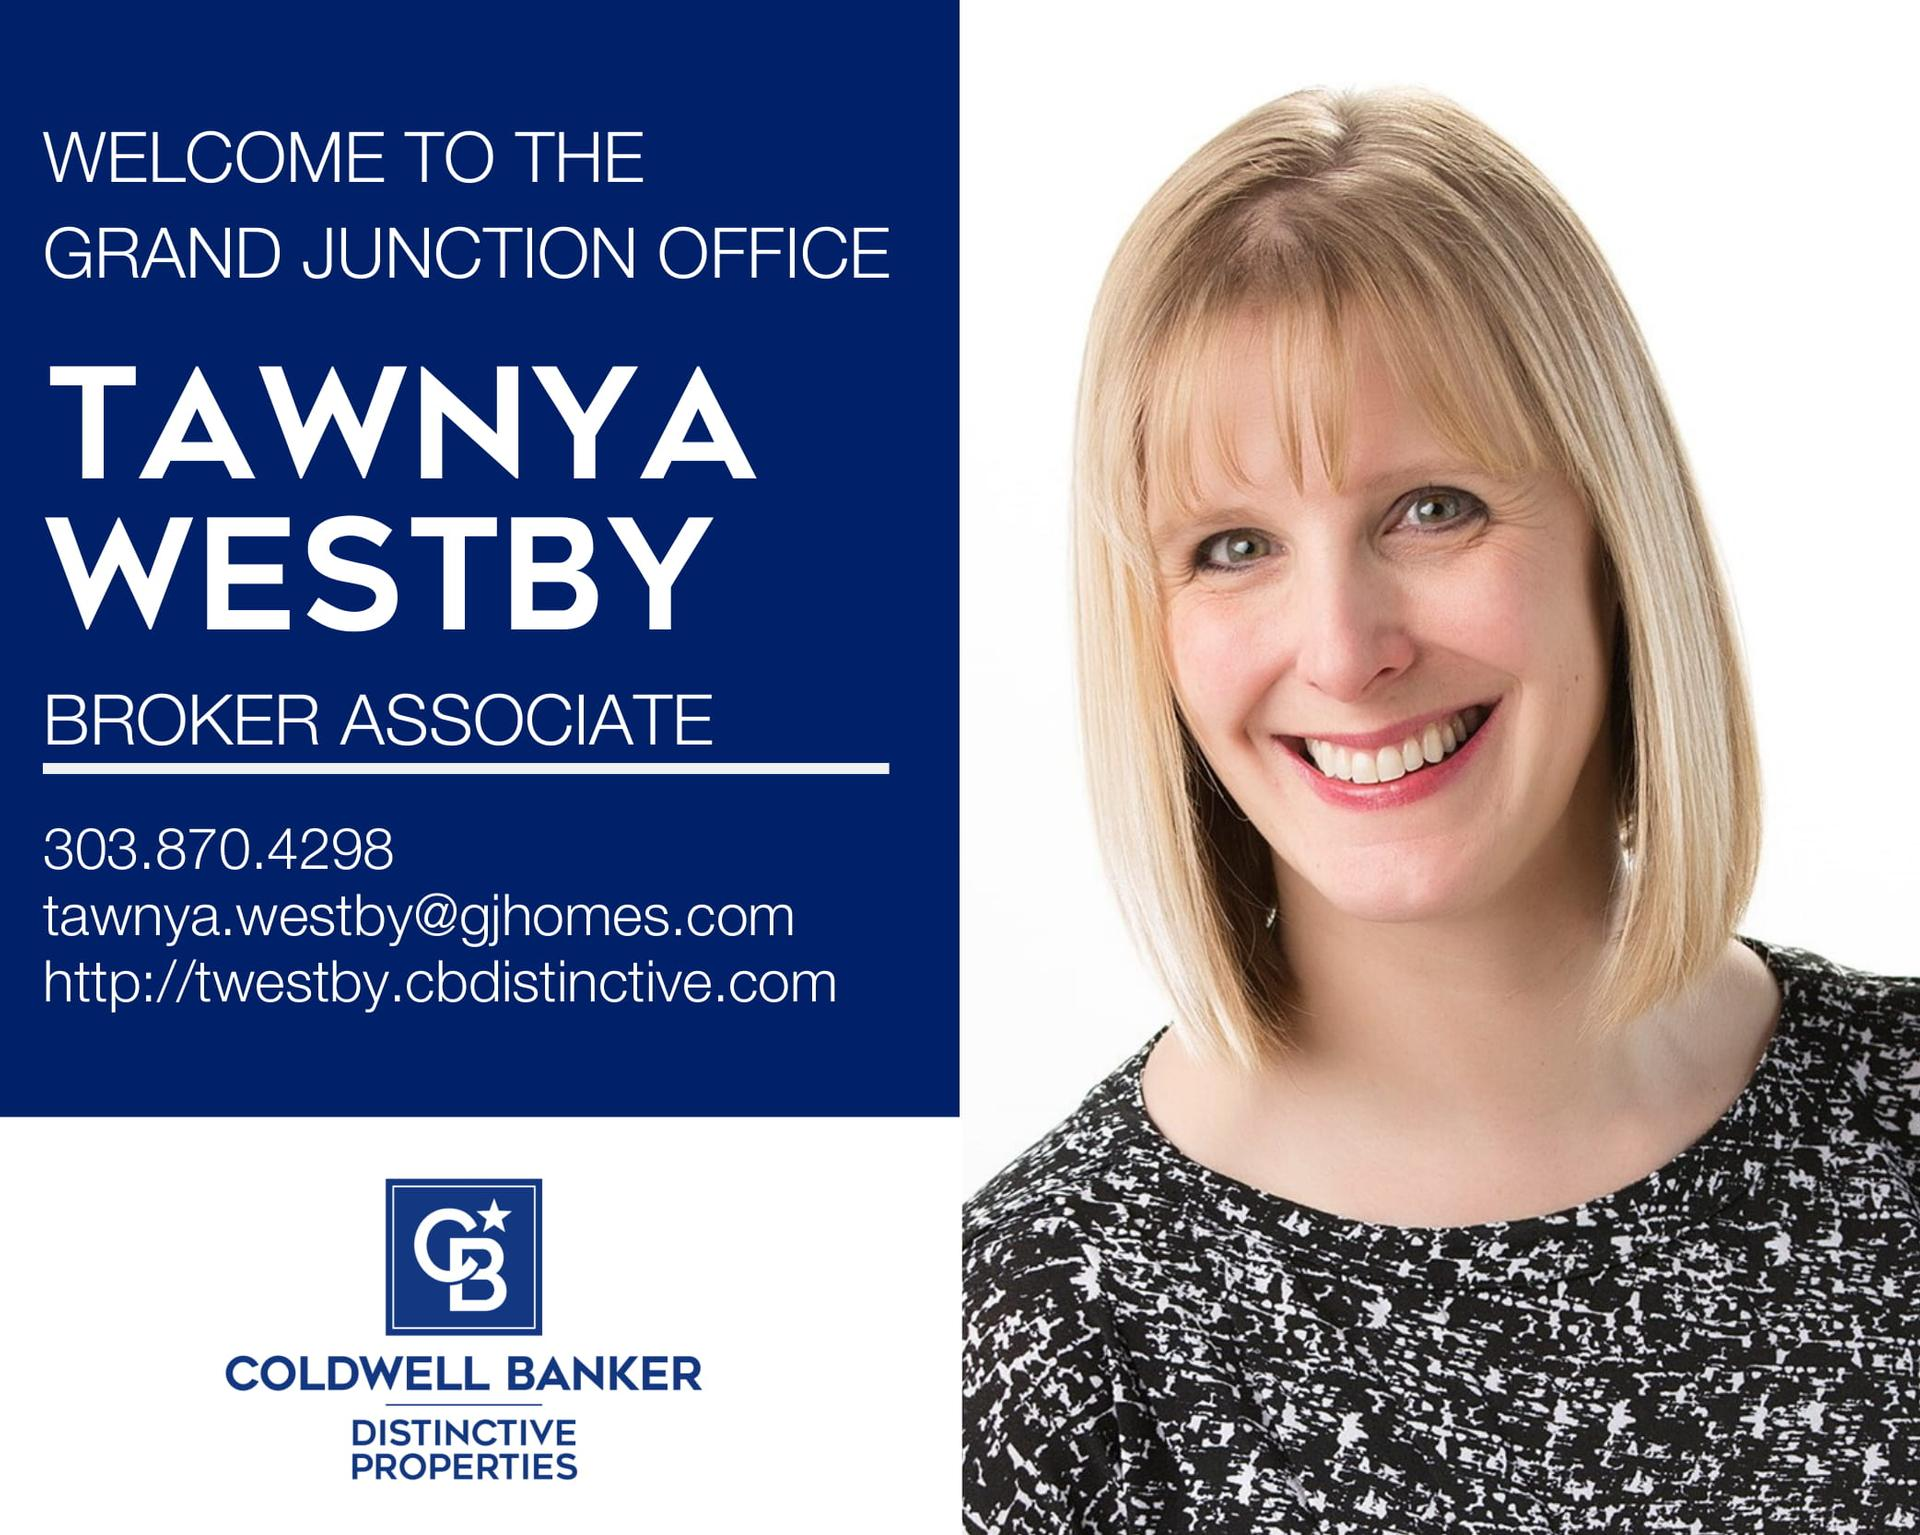 Please help us welcome Tawnya Westby to our Coldwell Banker family! Main Photo